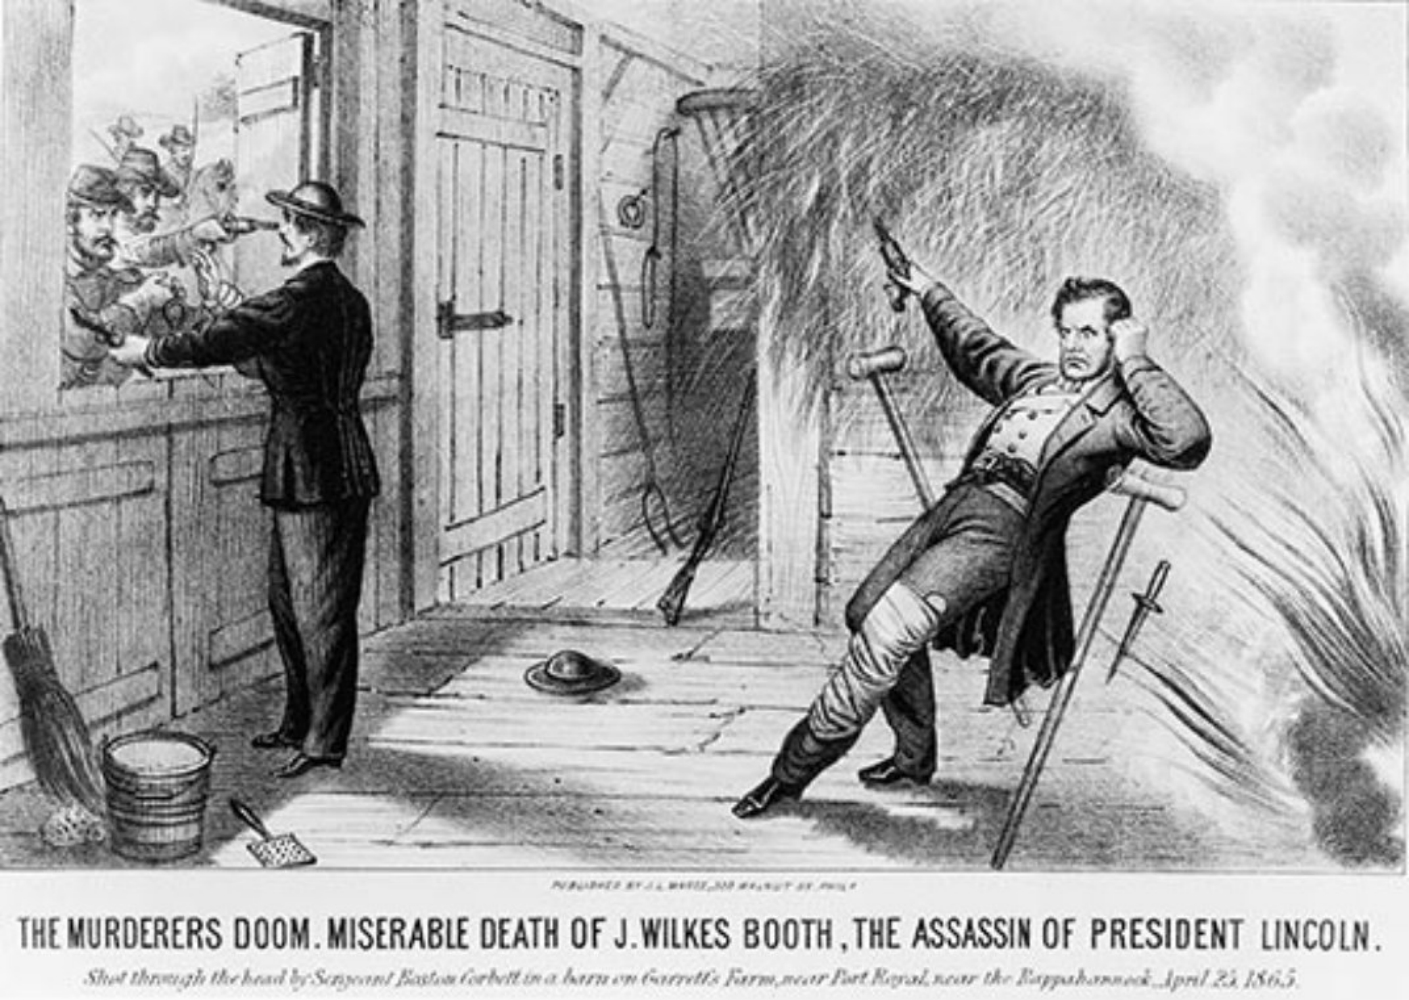 an introduction to all american tragedy lincoln assassination Although no american alive today was a contemporary of lincoln, i think we're still scarred, collectively and historically, by his assassination and the reasons behind it but because of a unique convergence in time, that event of april 14, 1865 can never be decoupled from the event that occurred the previous sunday.